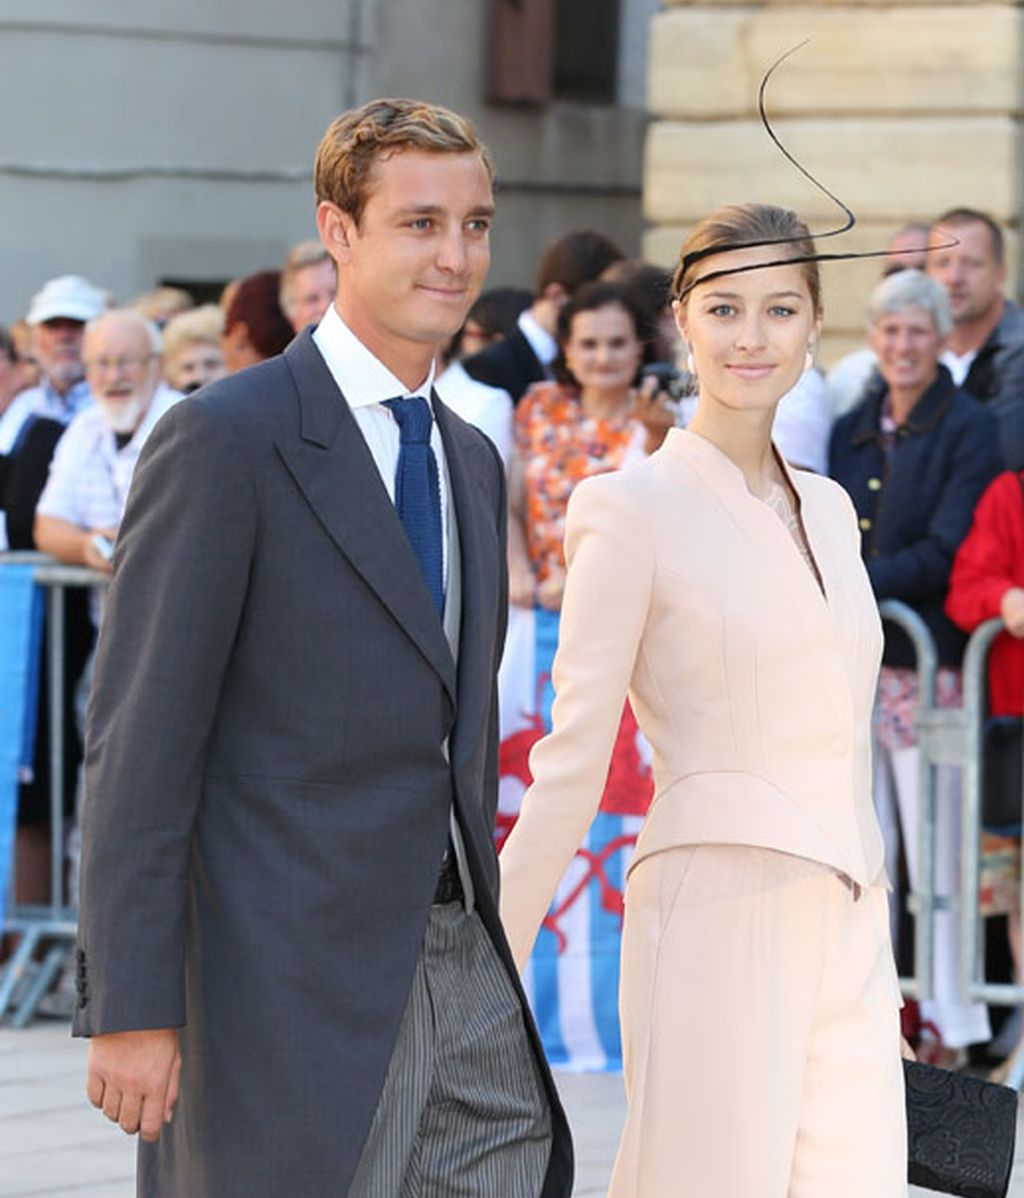 Pierre Casiraghi y Beatriz Borromeo